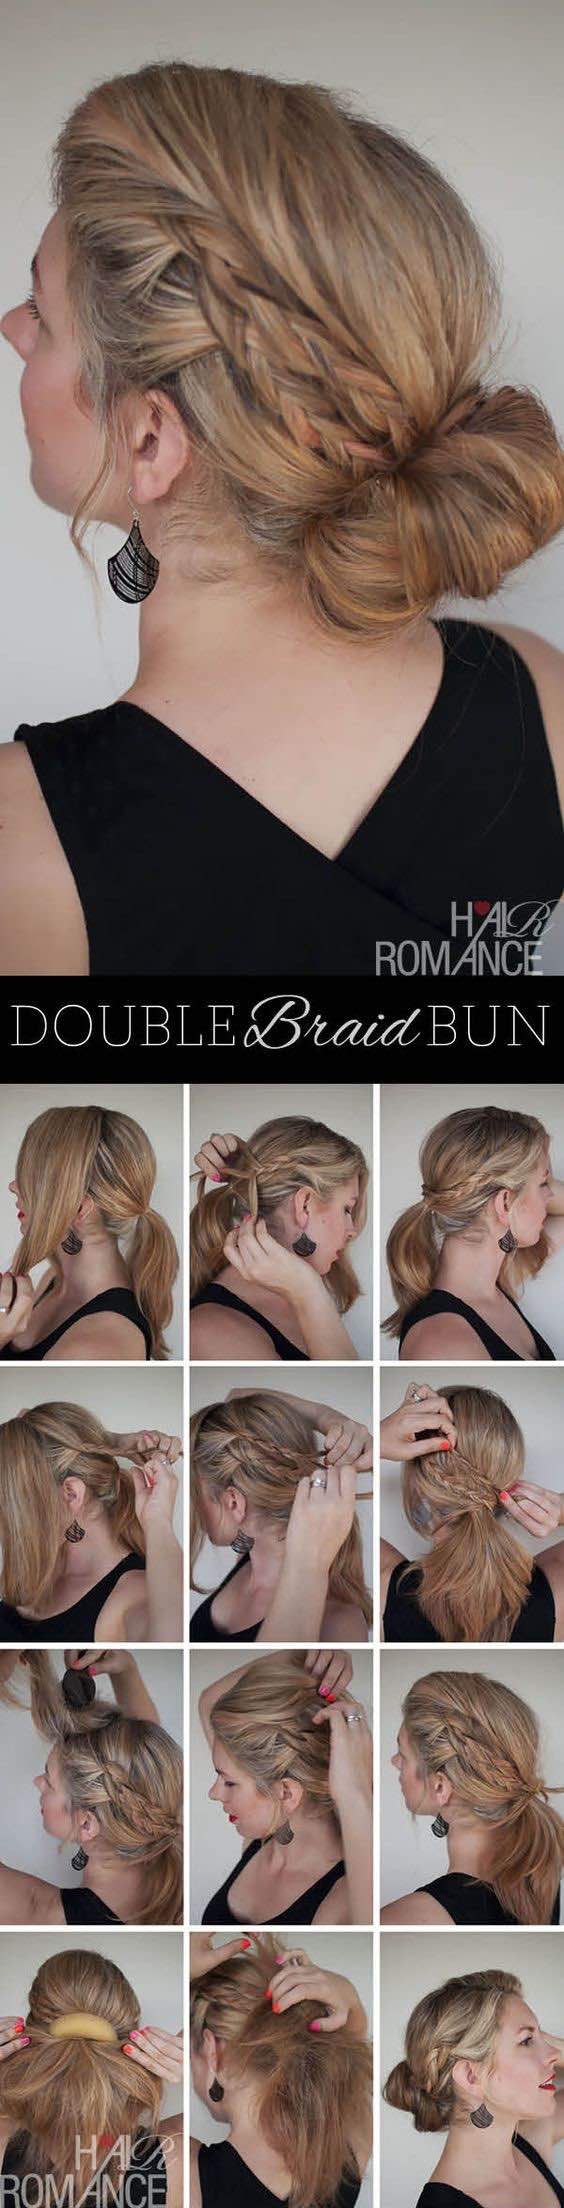 wedding-hairstyle-tutorial-7-02102016-km